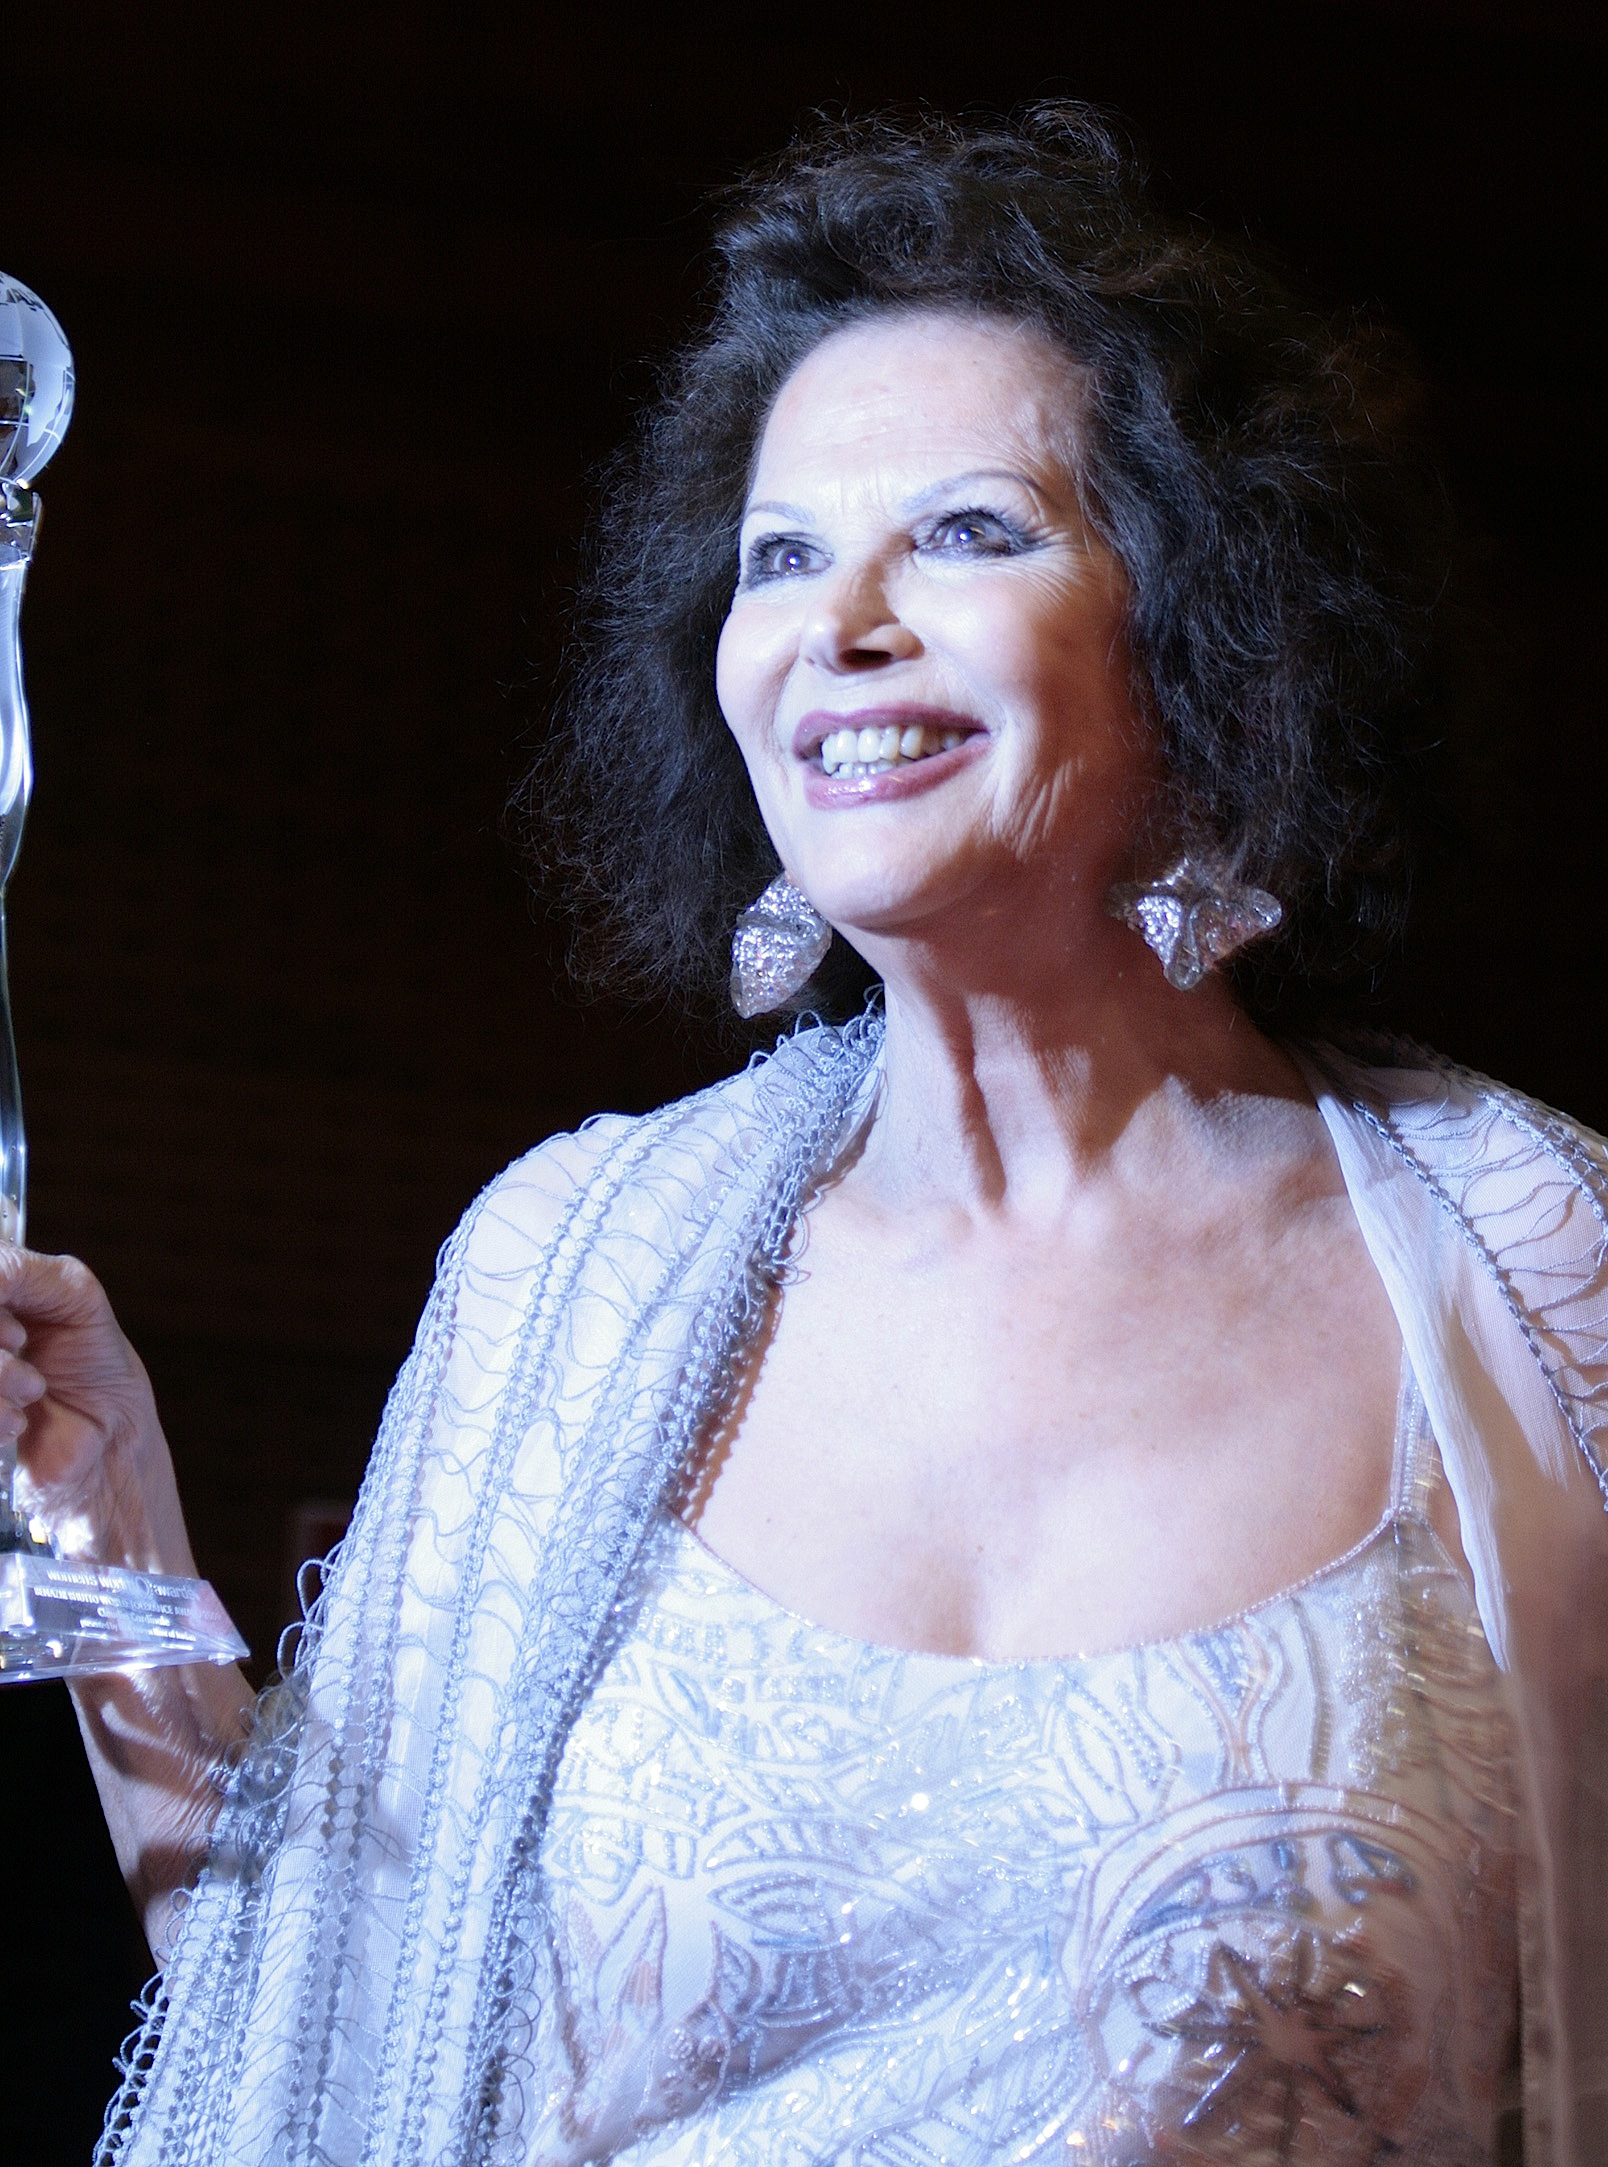 Claudia Cardinale at the Women's World Awards 2009 in Vienna, Austria